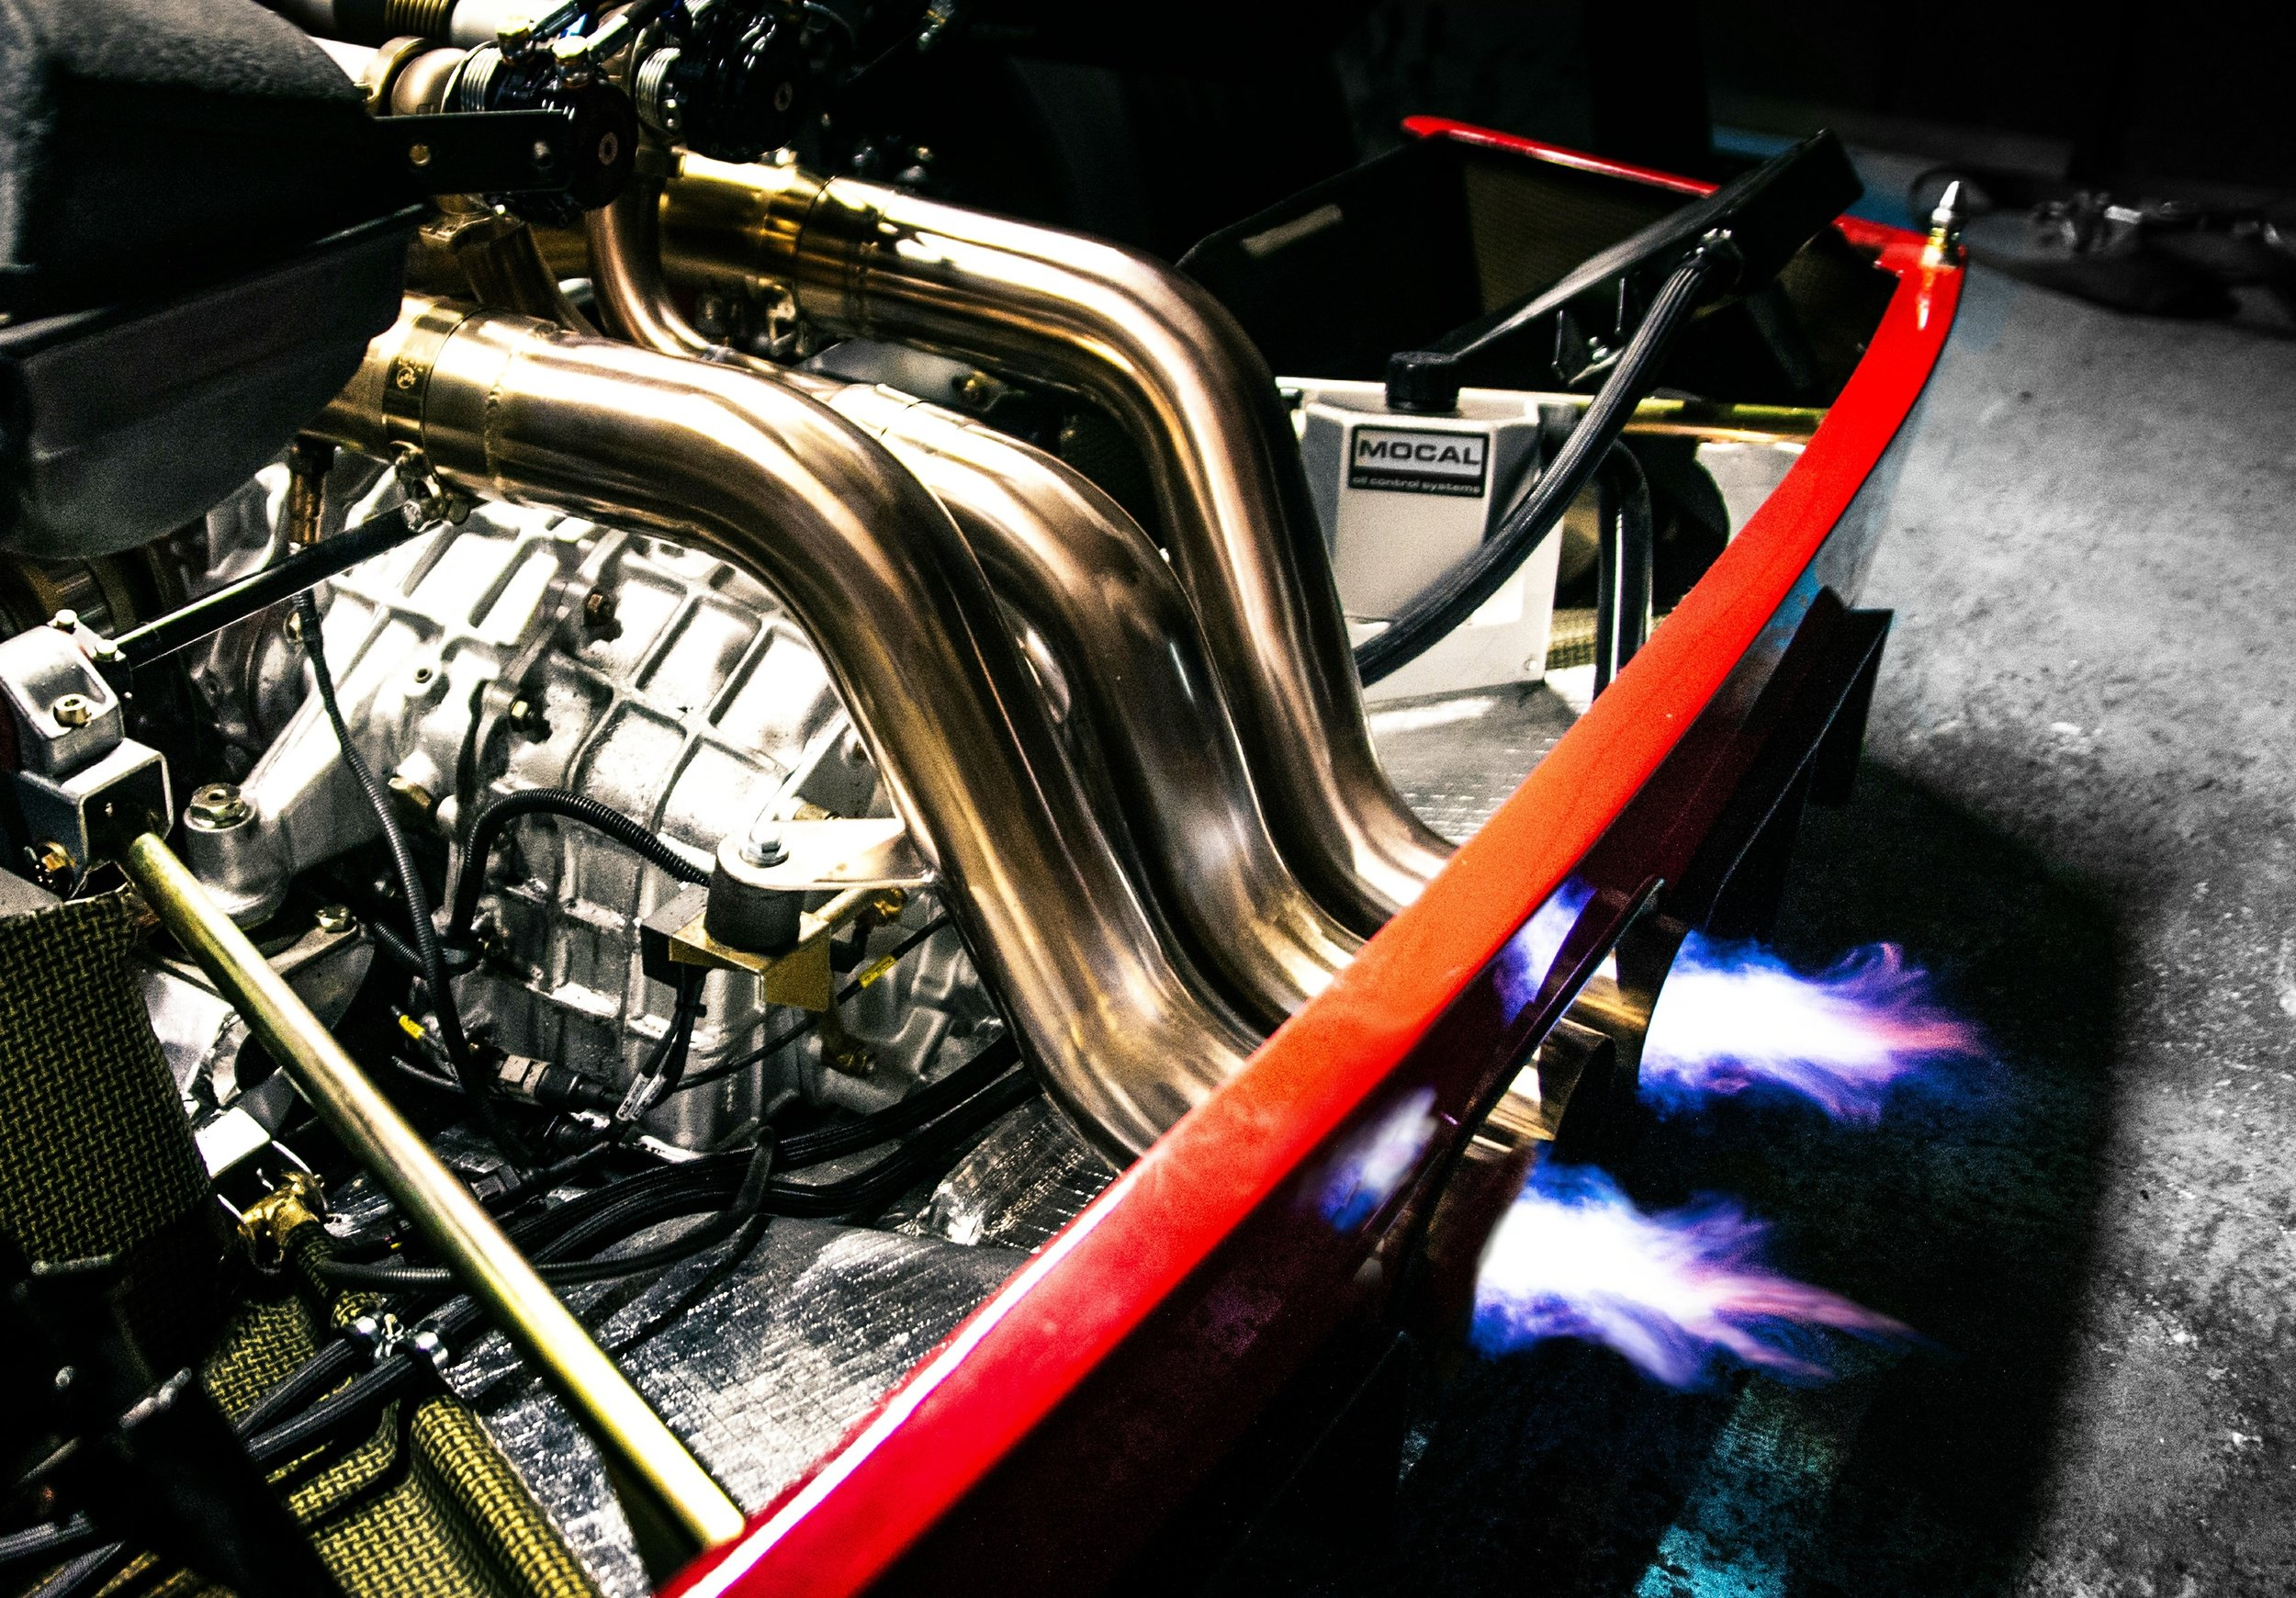 Fire breathing exhausts of the 720bhp Ferrari Twin Turbo Engine.